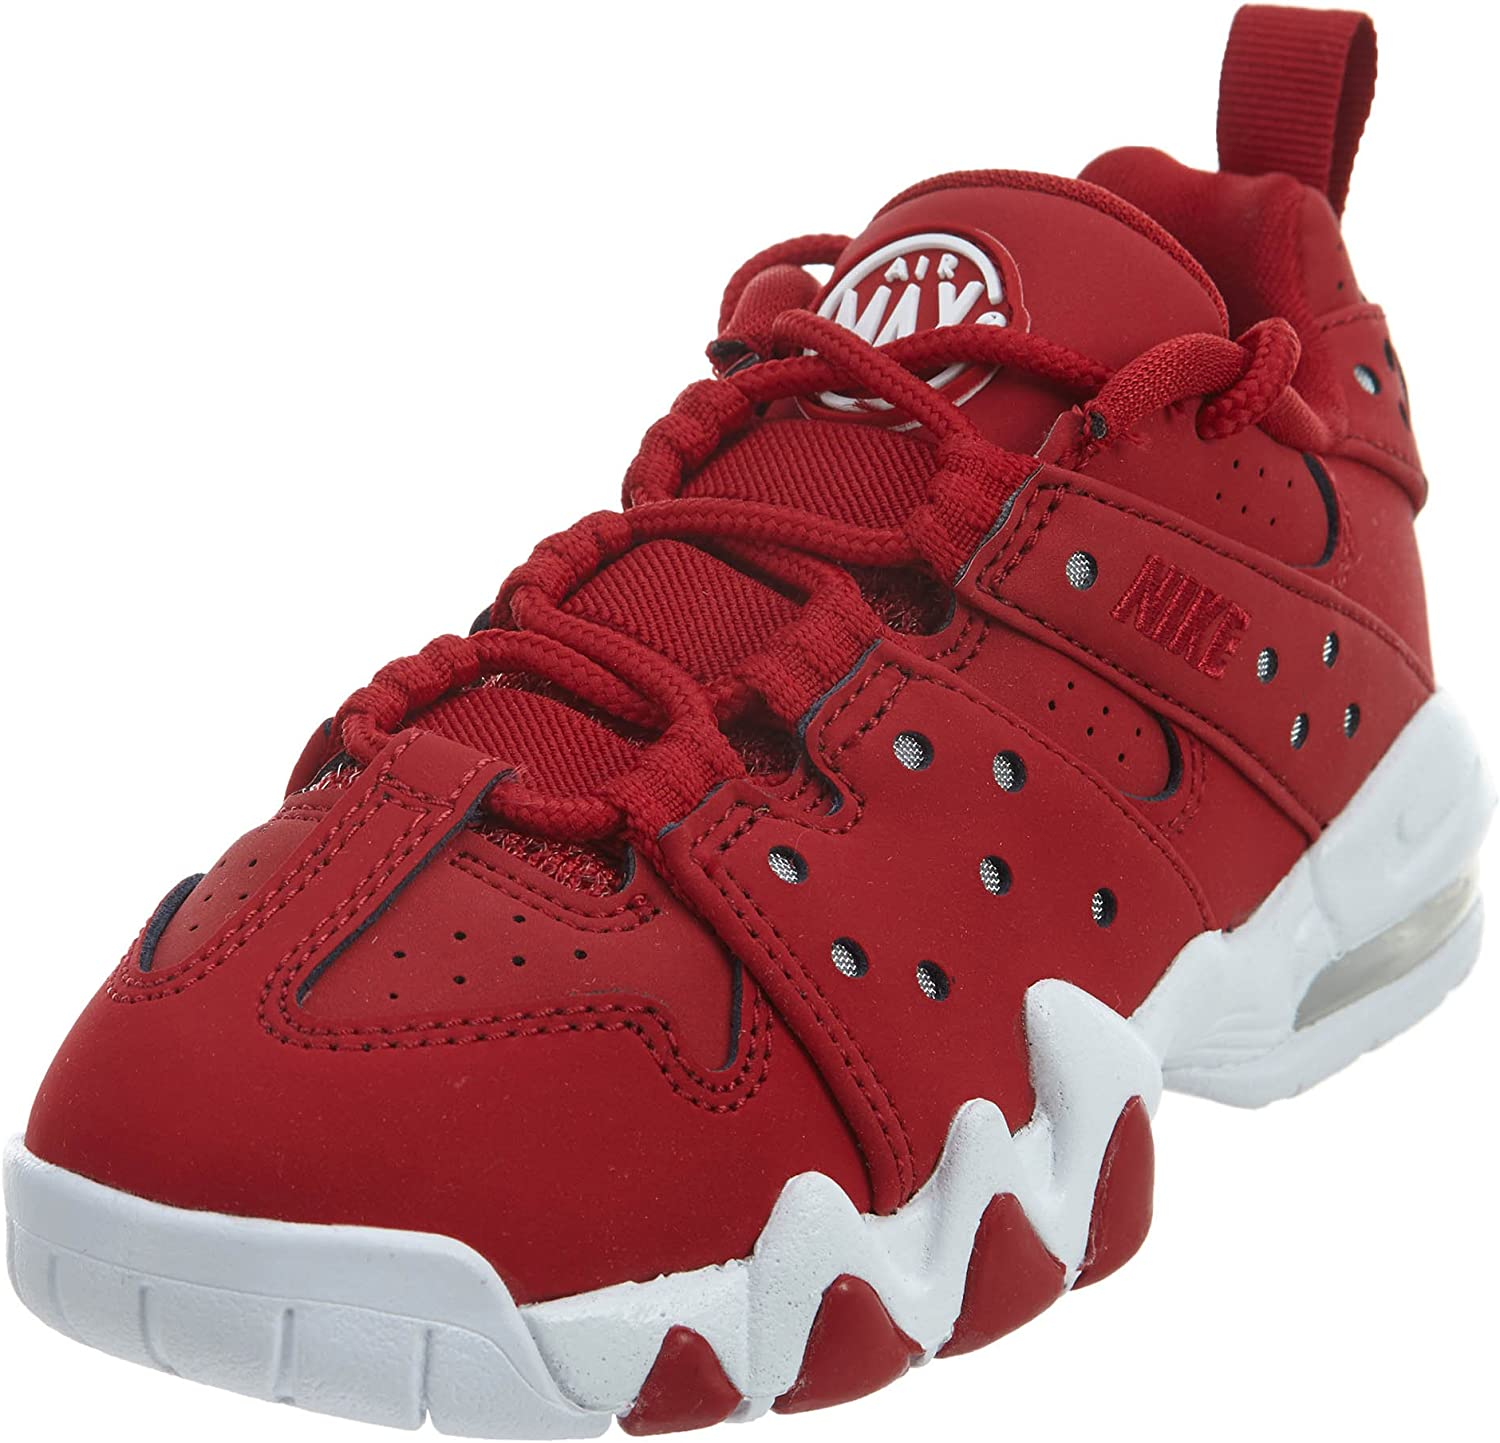 Nike Air Max CB '94 Low Little Kids (PS